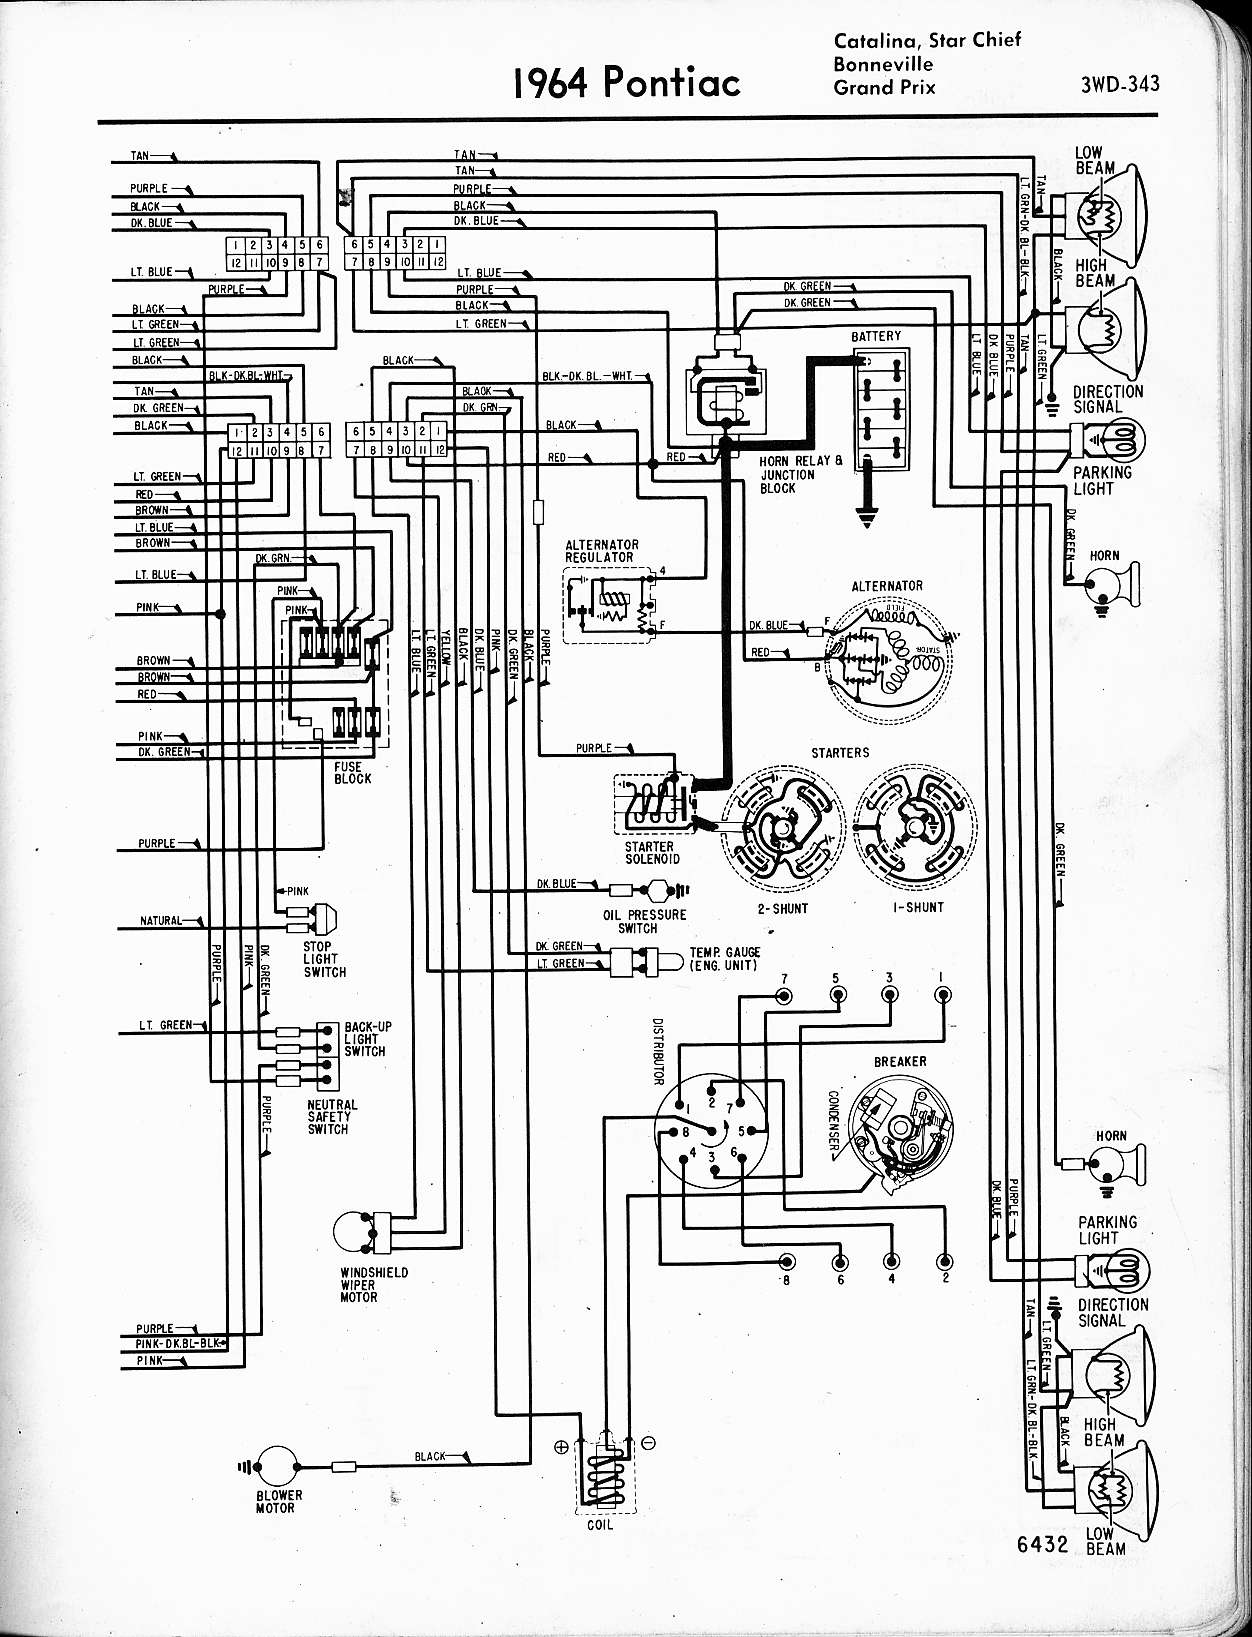 diagrams of 1963 pontiac tempest part 2 circuit wiring diagrams rh linxglobal co